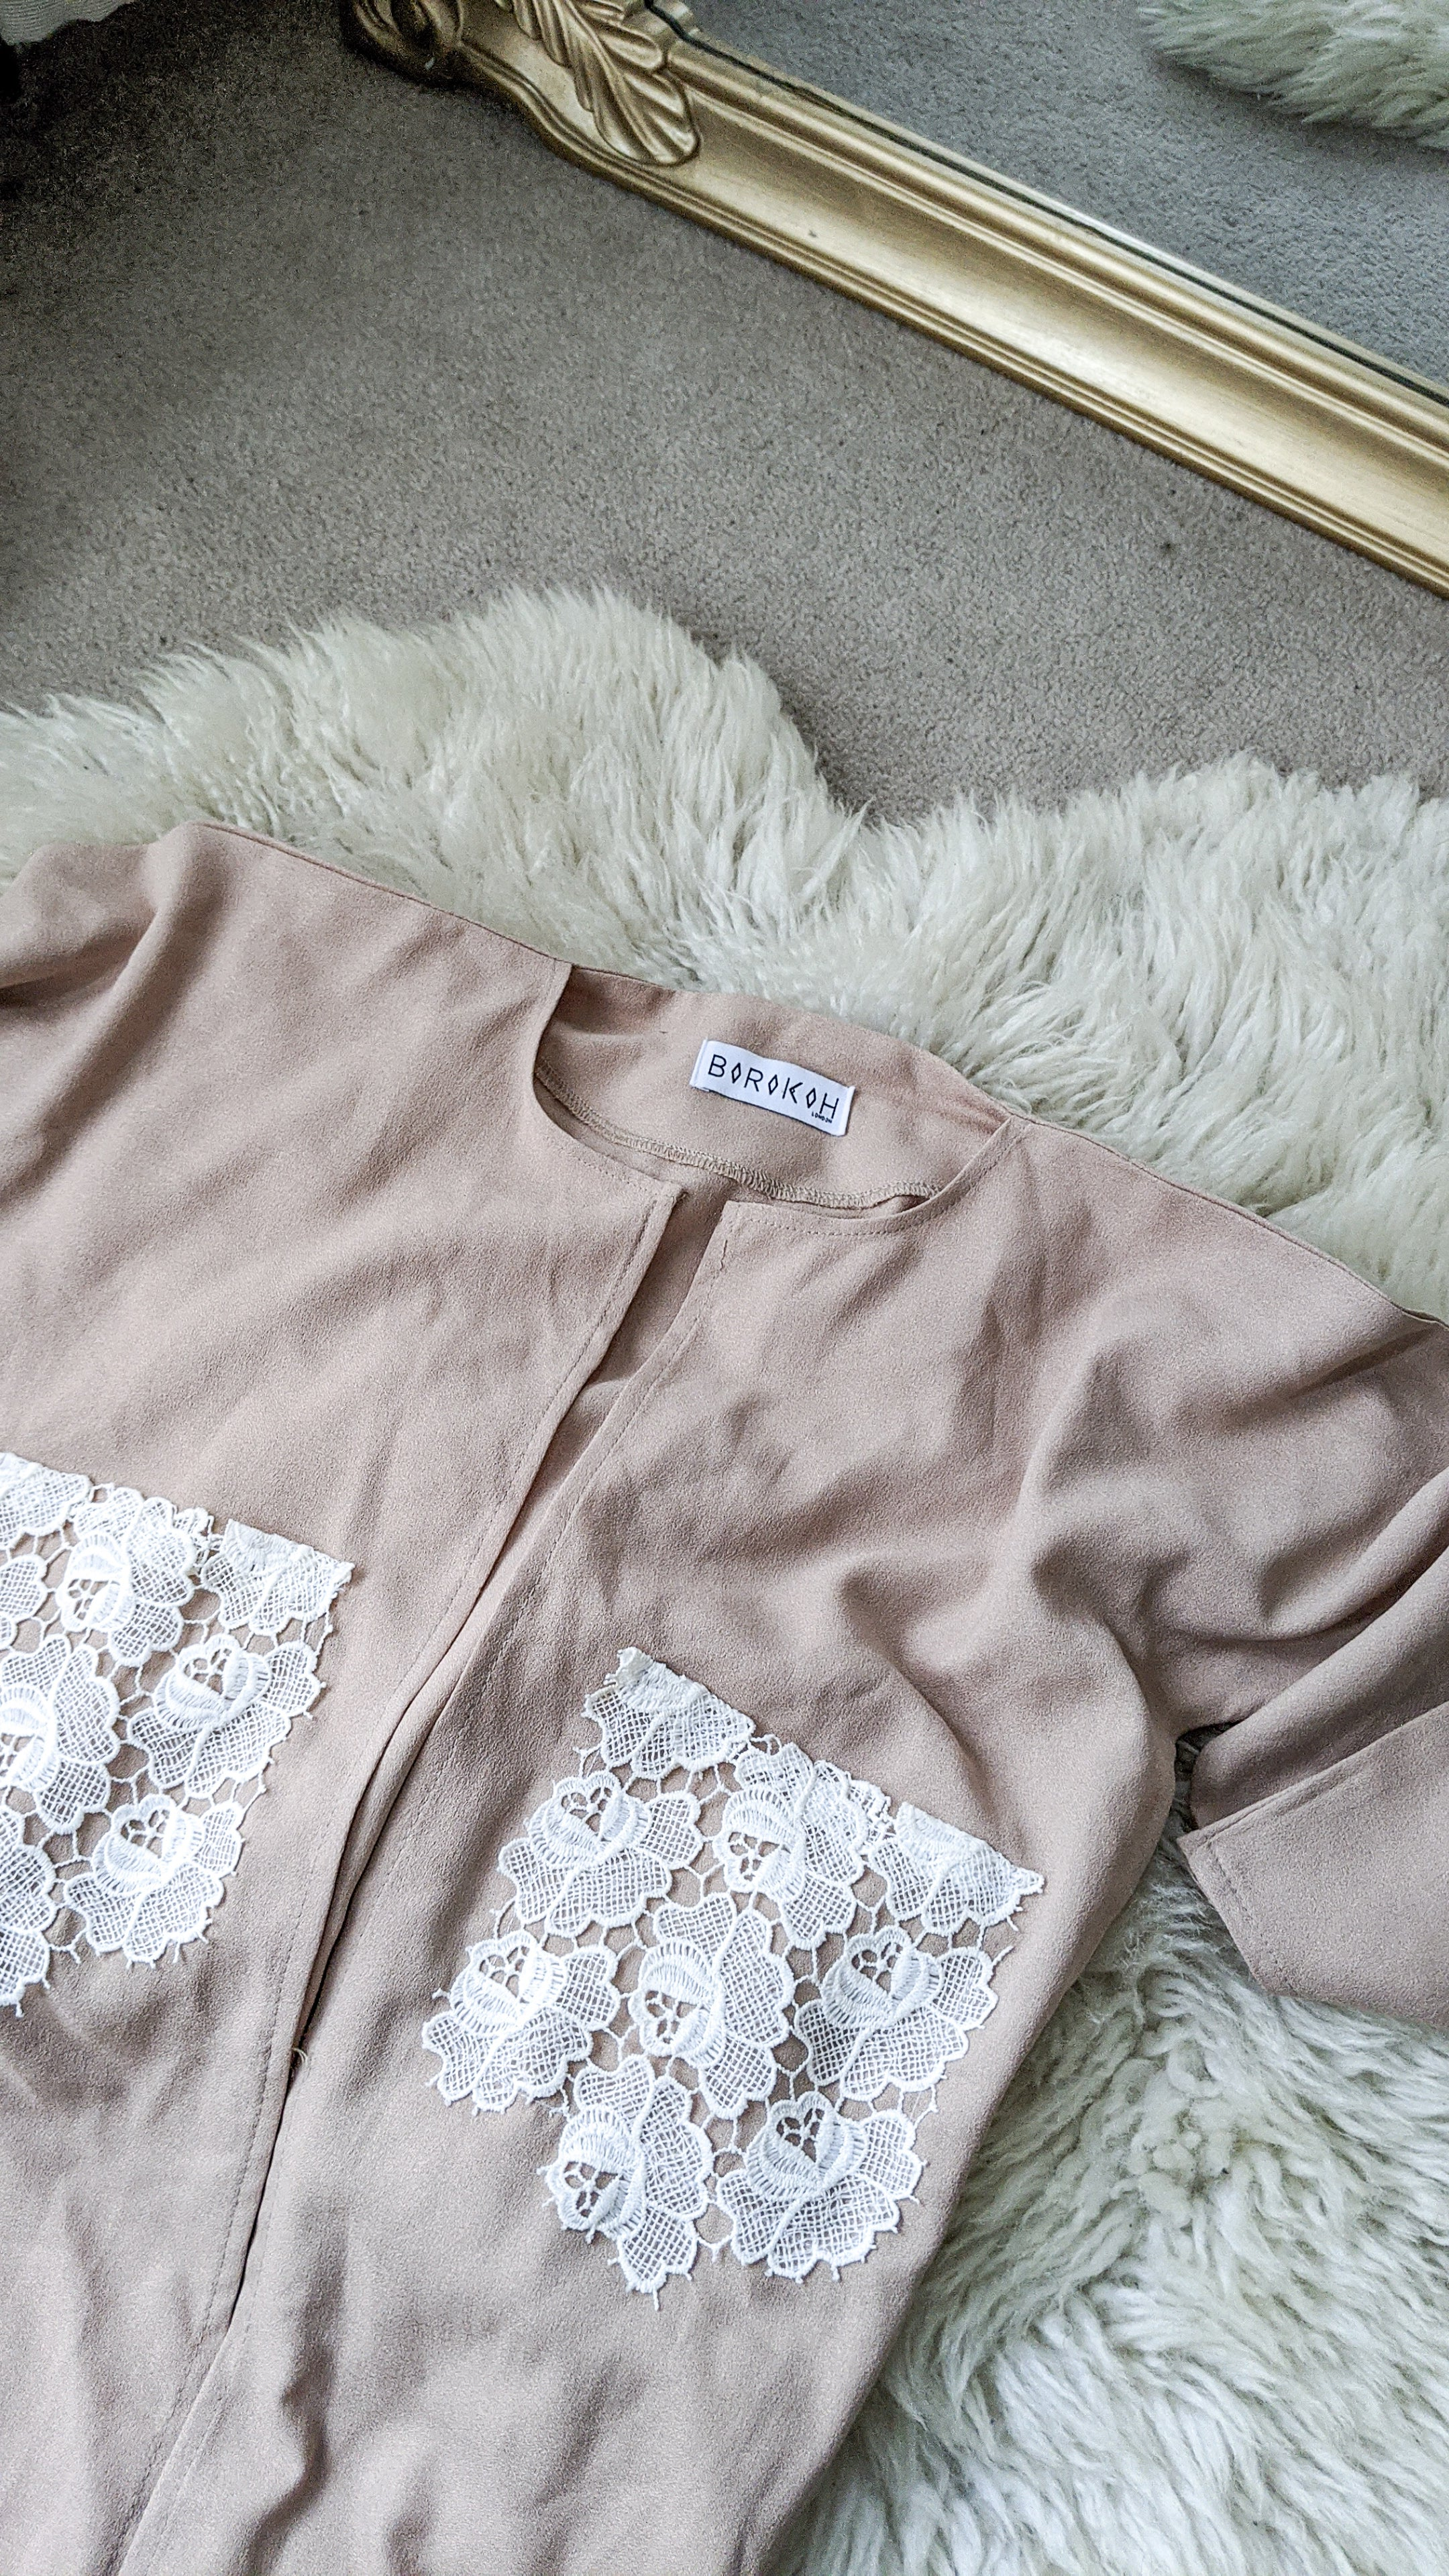 Floral lace pockets.